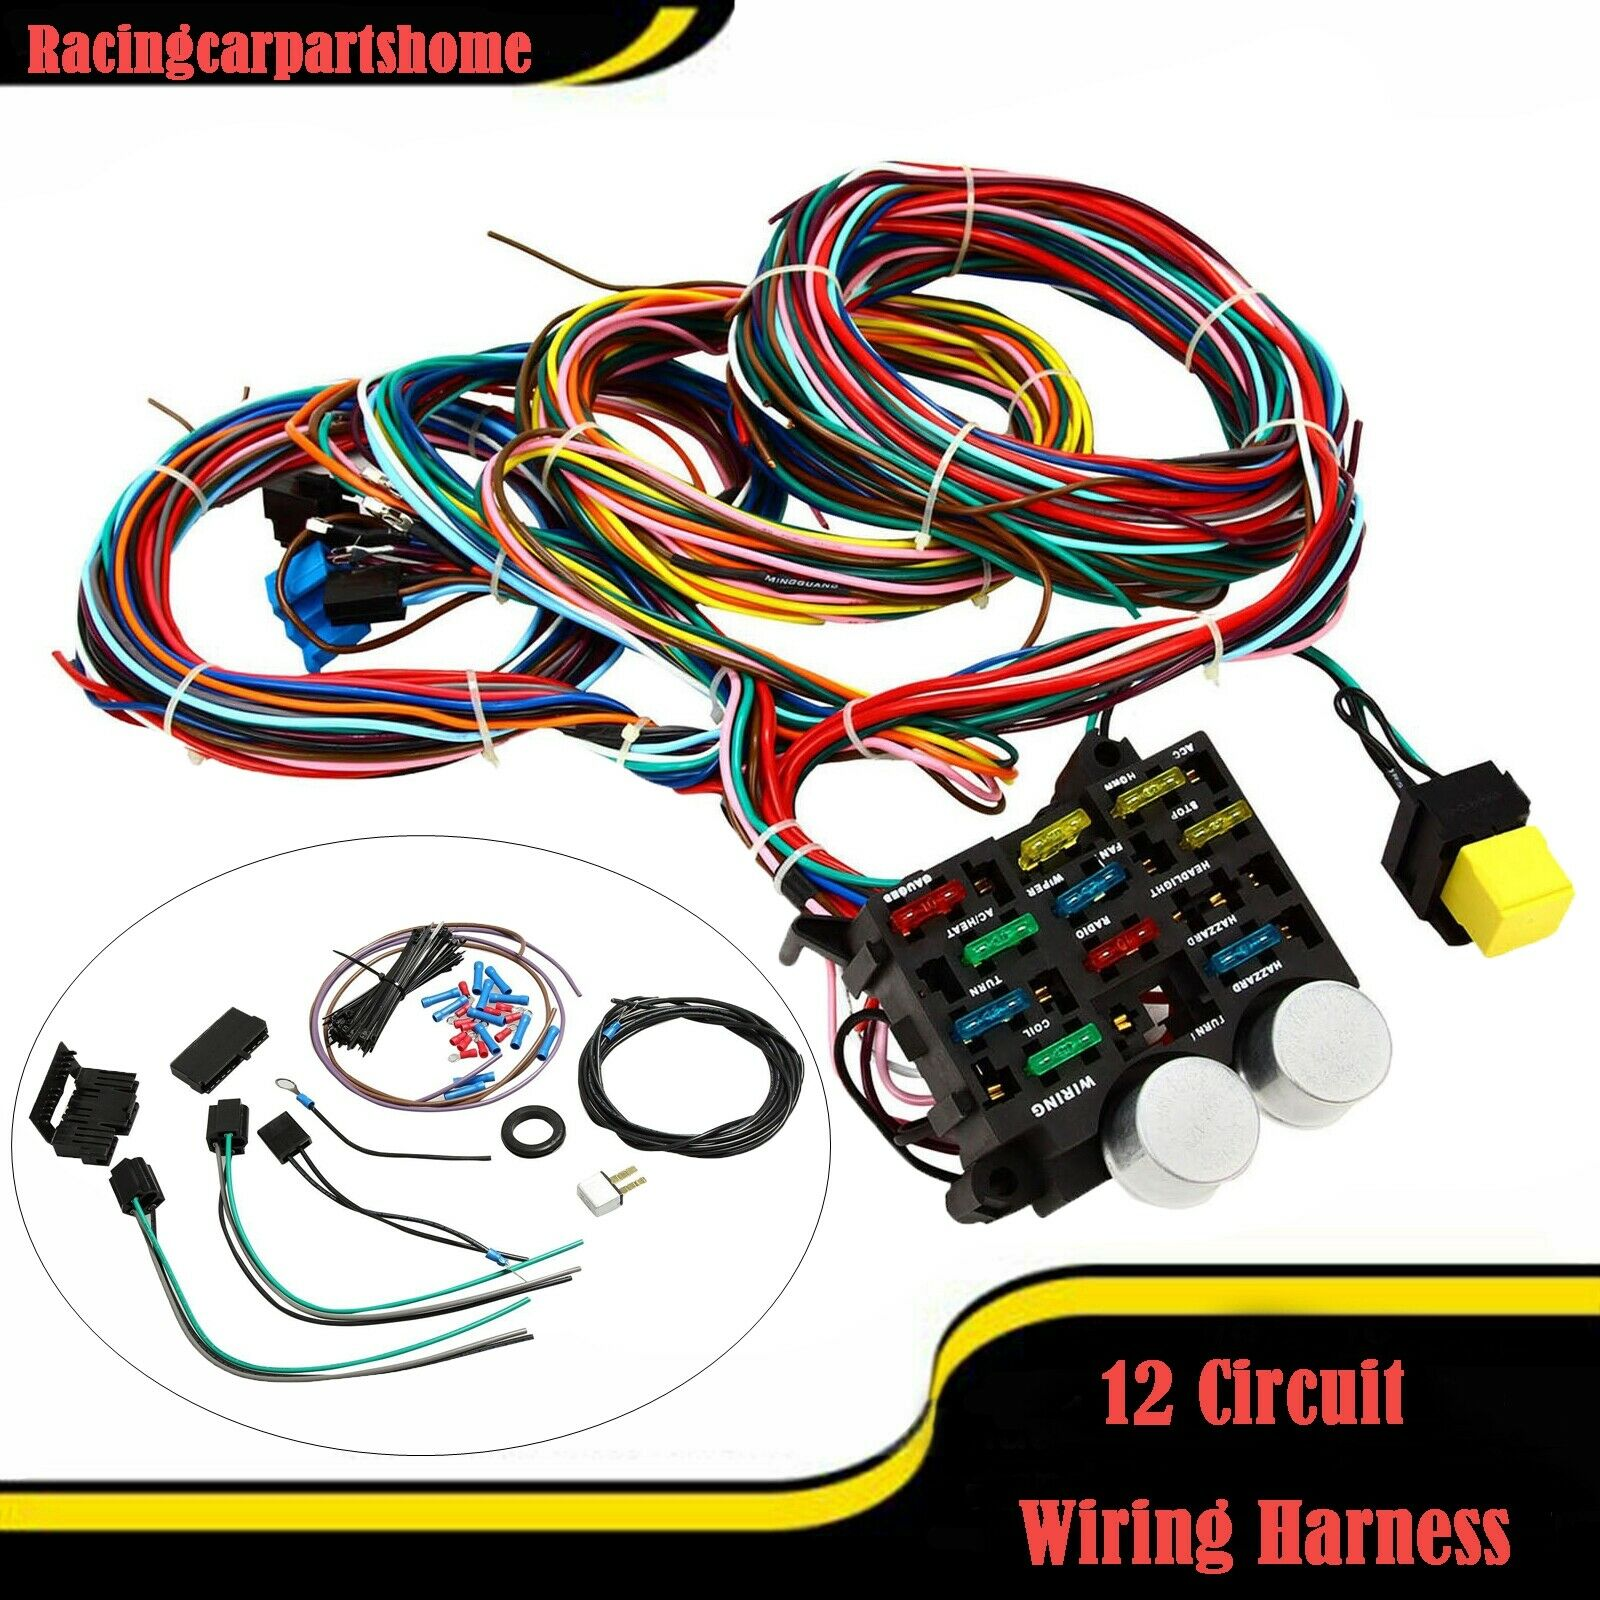 Street Rod Wiring Harness Library Universal Ford Wire 12 Circuit Hot For Chevy Mopar 1 Of 7free